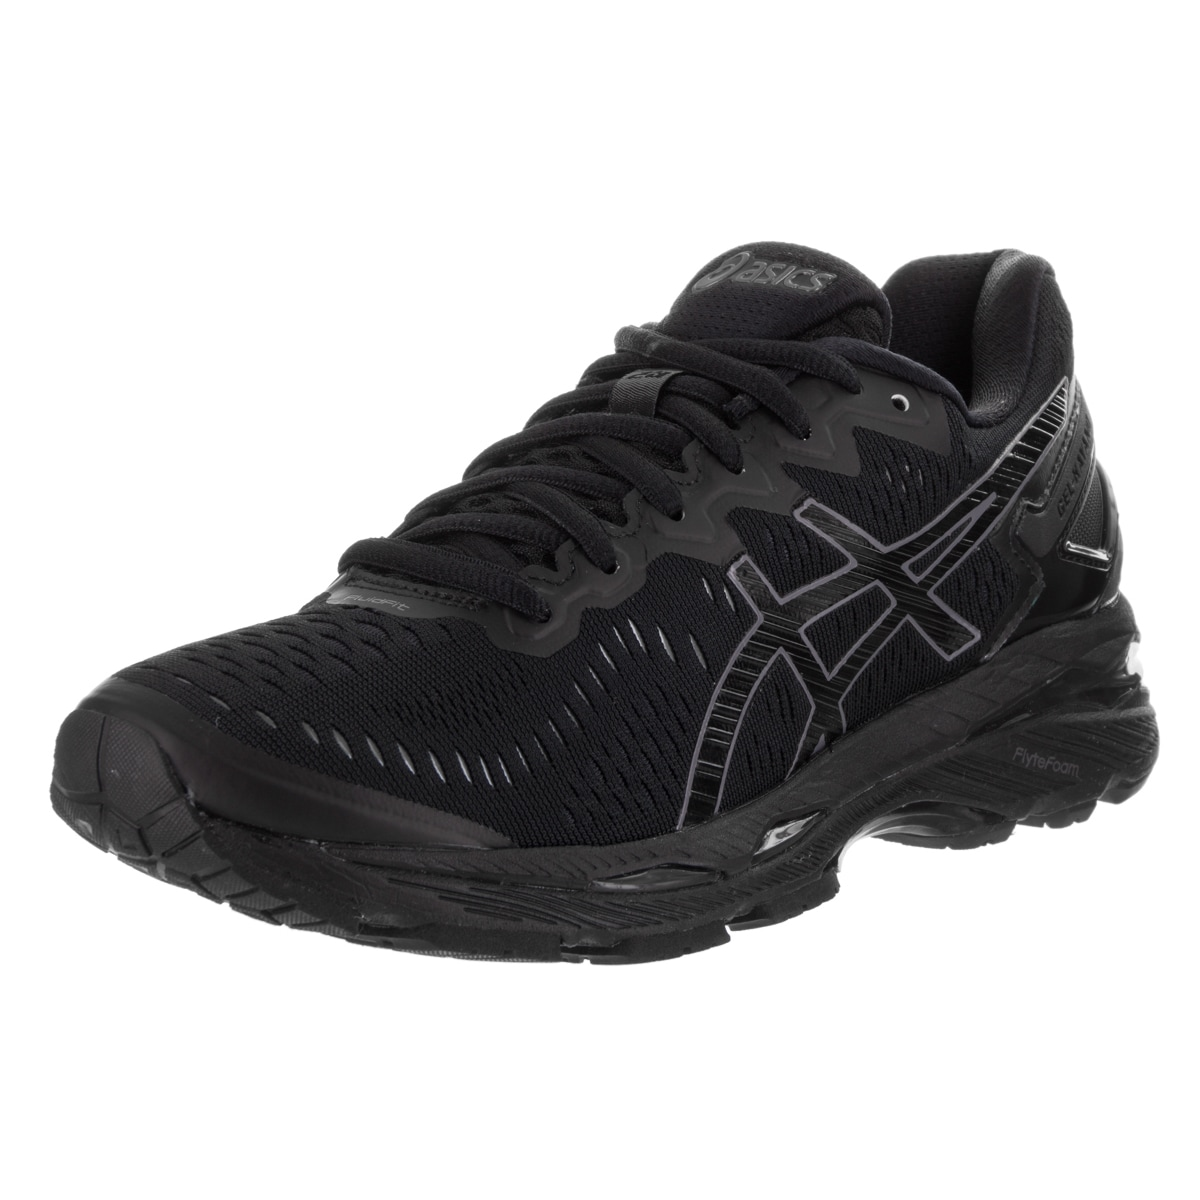 944cdec79de8 Shop Asics Women s Gel-kayano 23 Black Textile Running Shoes - Free ...